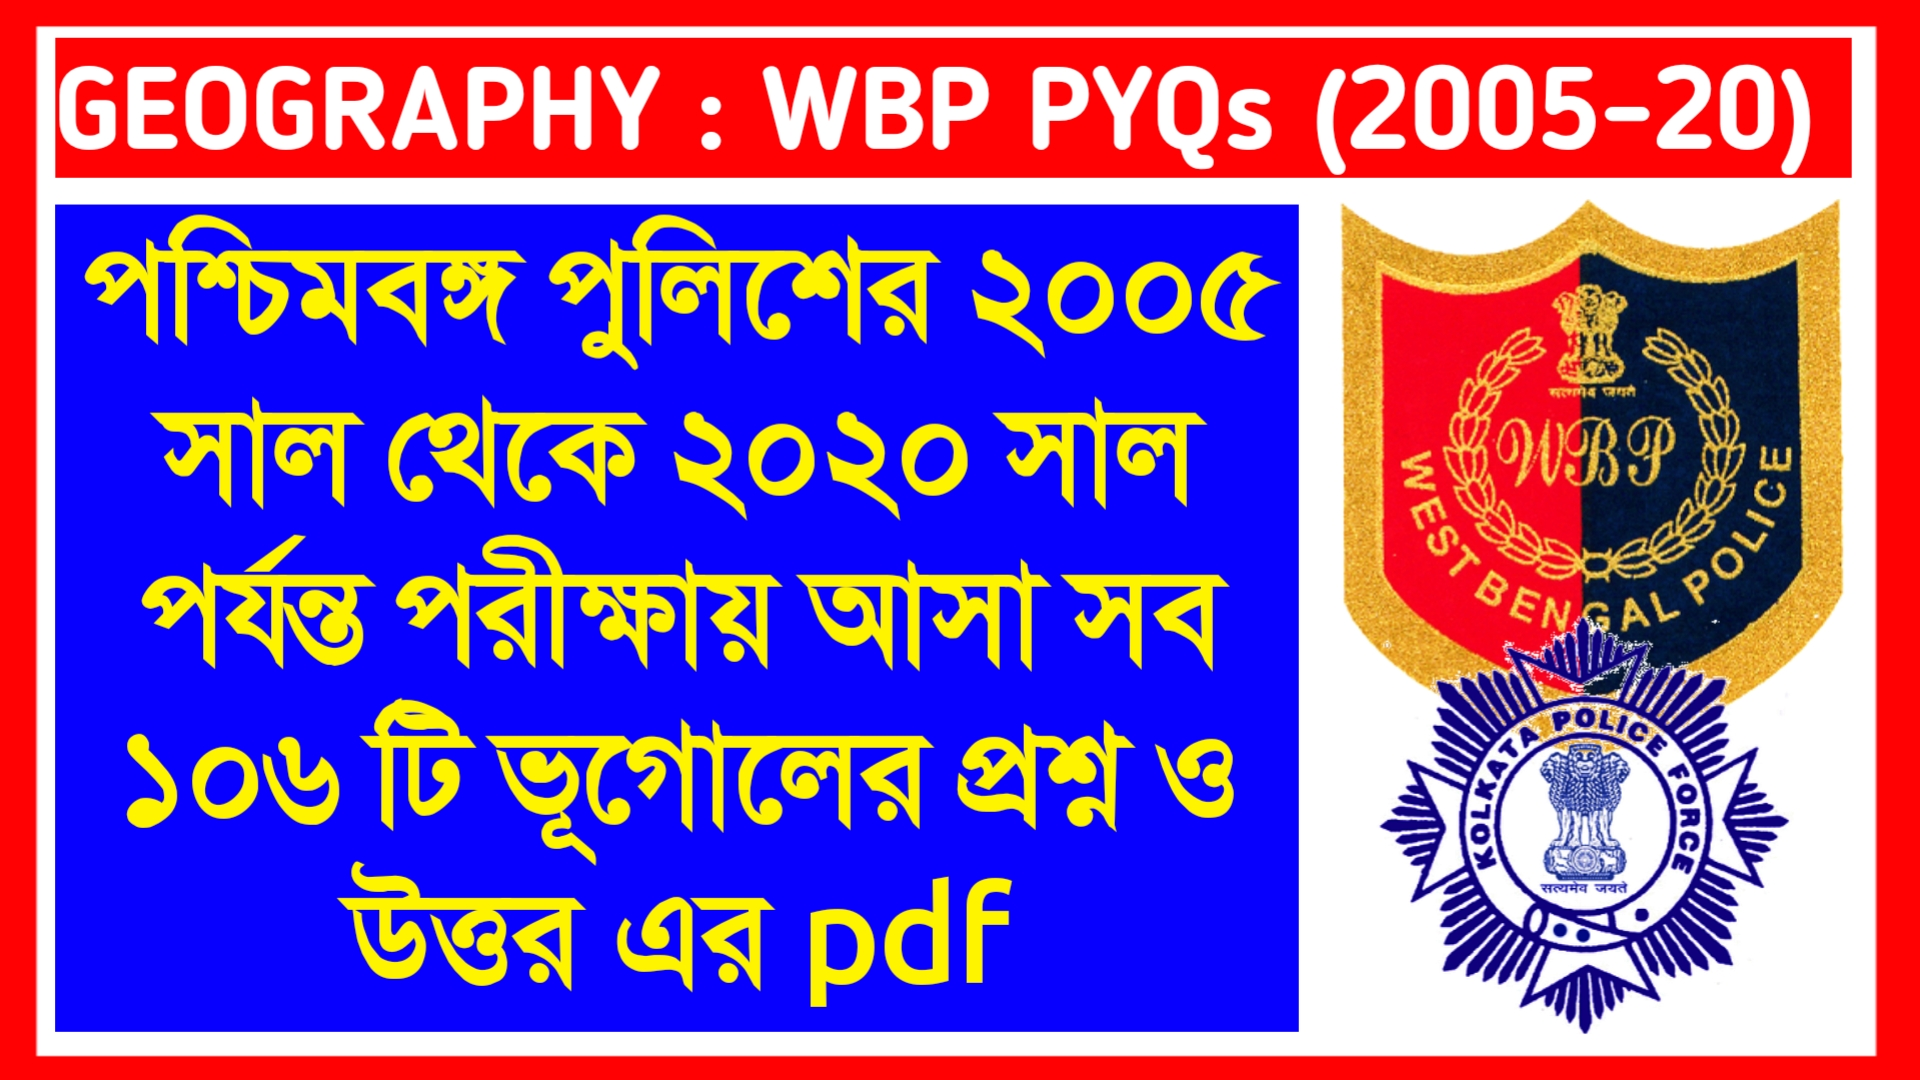 GEOGRAPHY: WBP ALL PREVIOUS YEARS QUESTION PAPER (2005 - 2020) II West Bengal Police SI & CONSTABLE Previous 15 Years Question Paper PDF DOWNLOAD